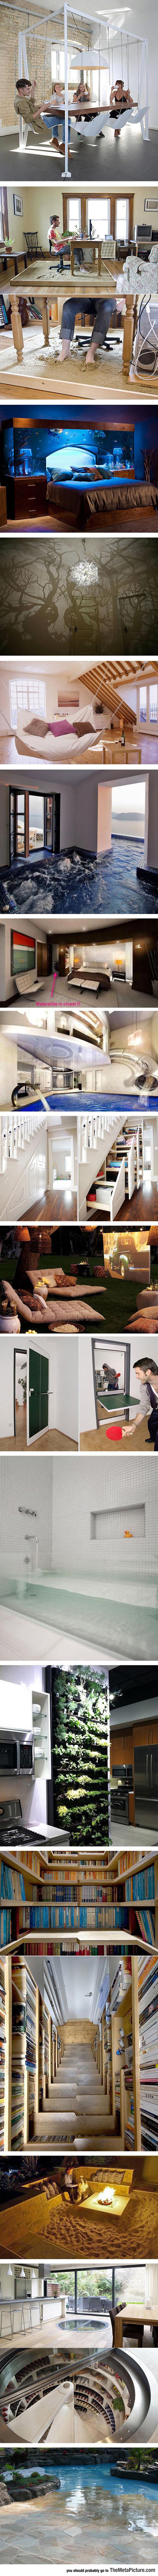 Very Clever House Ideas